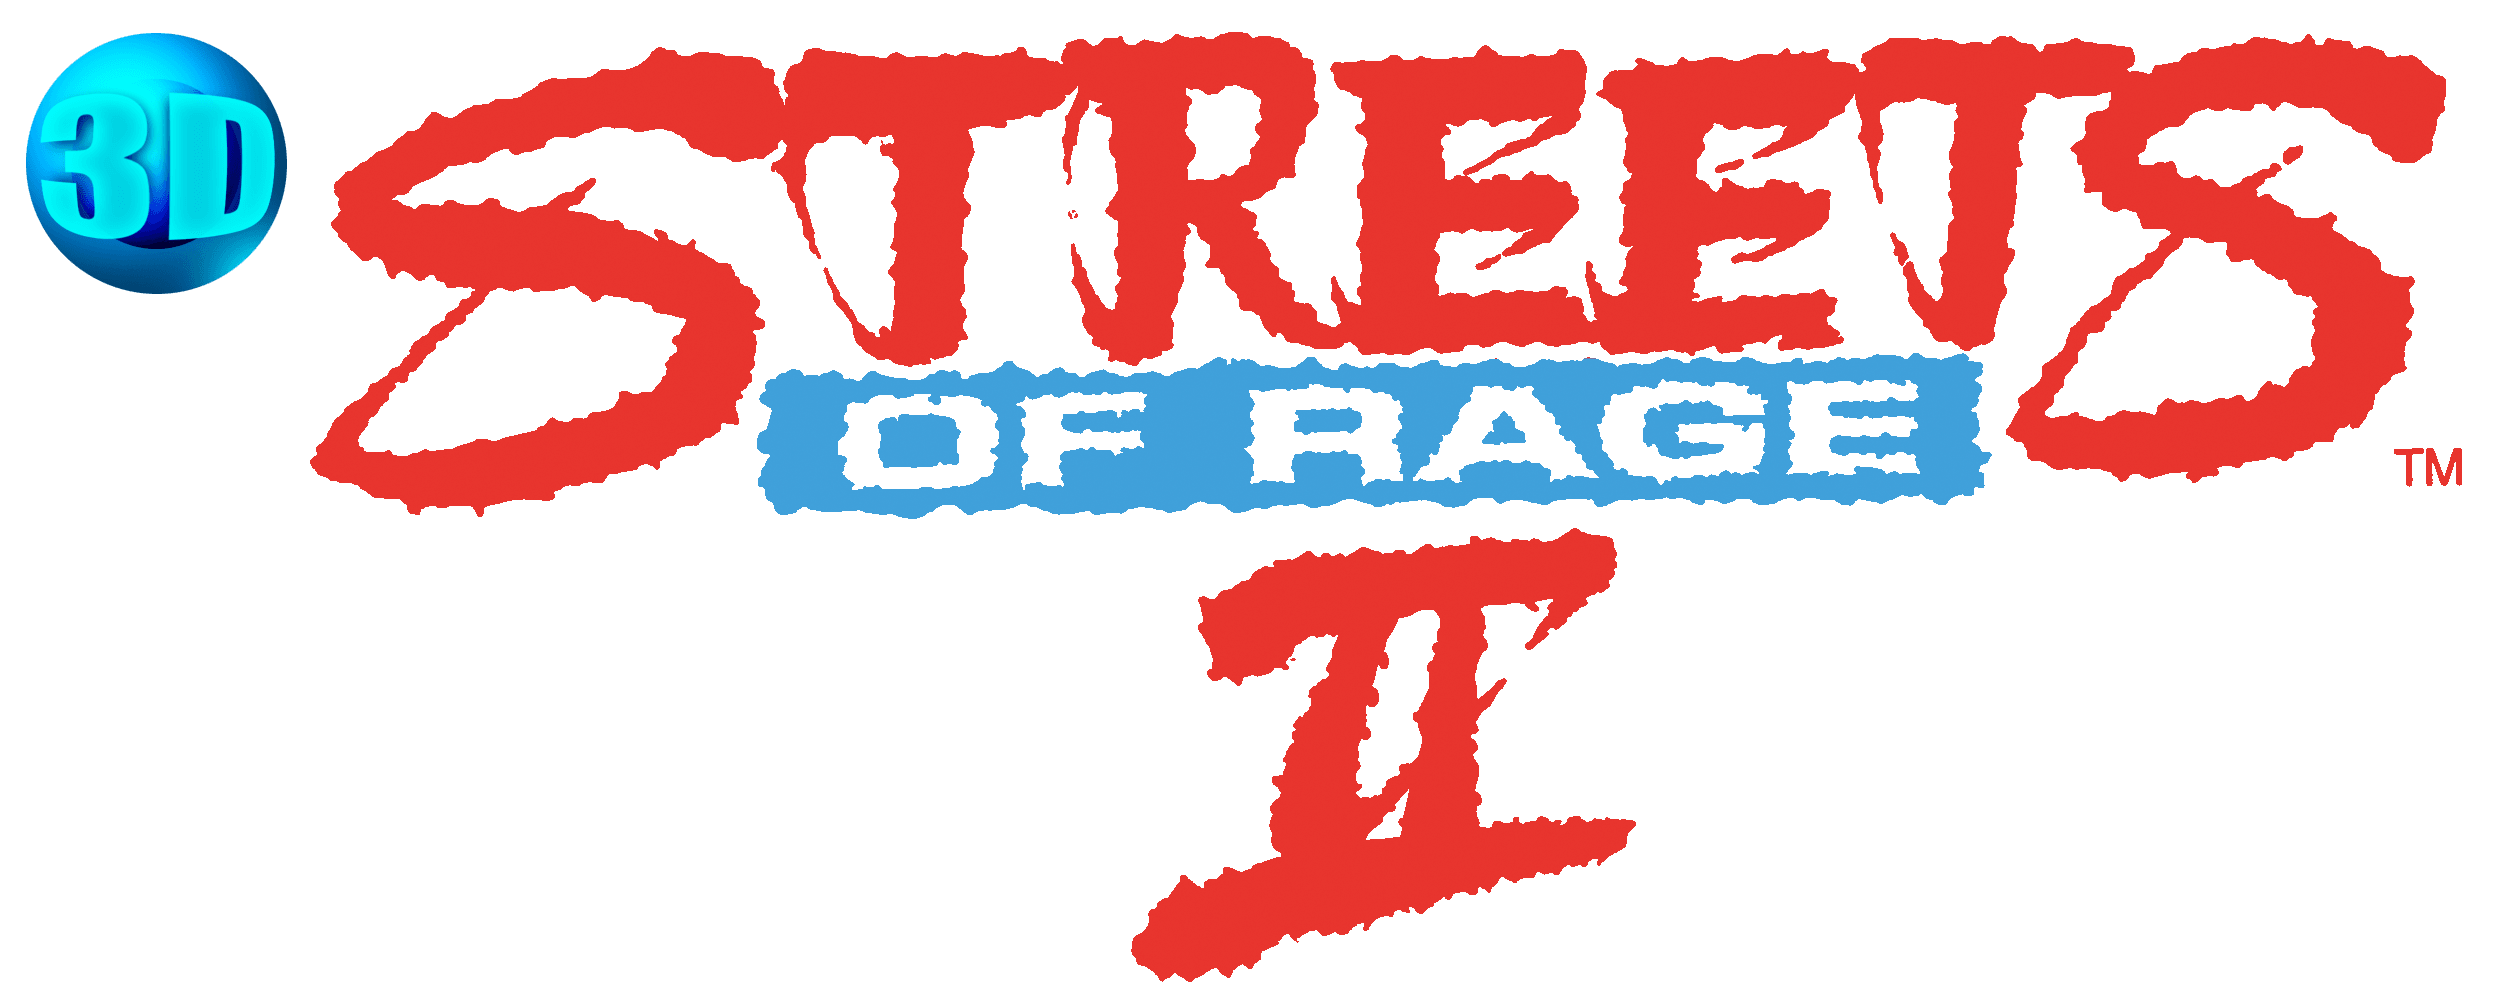 Streets of rage 2 logo png. D details launchbox